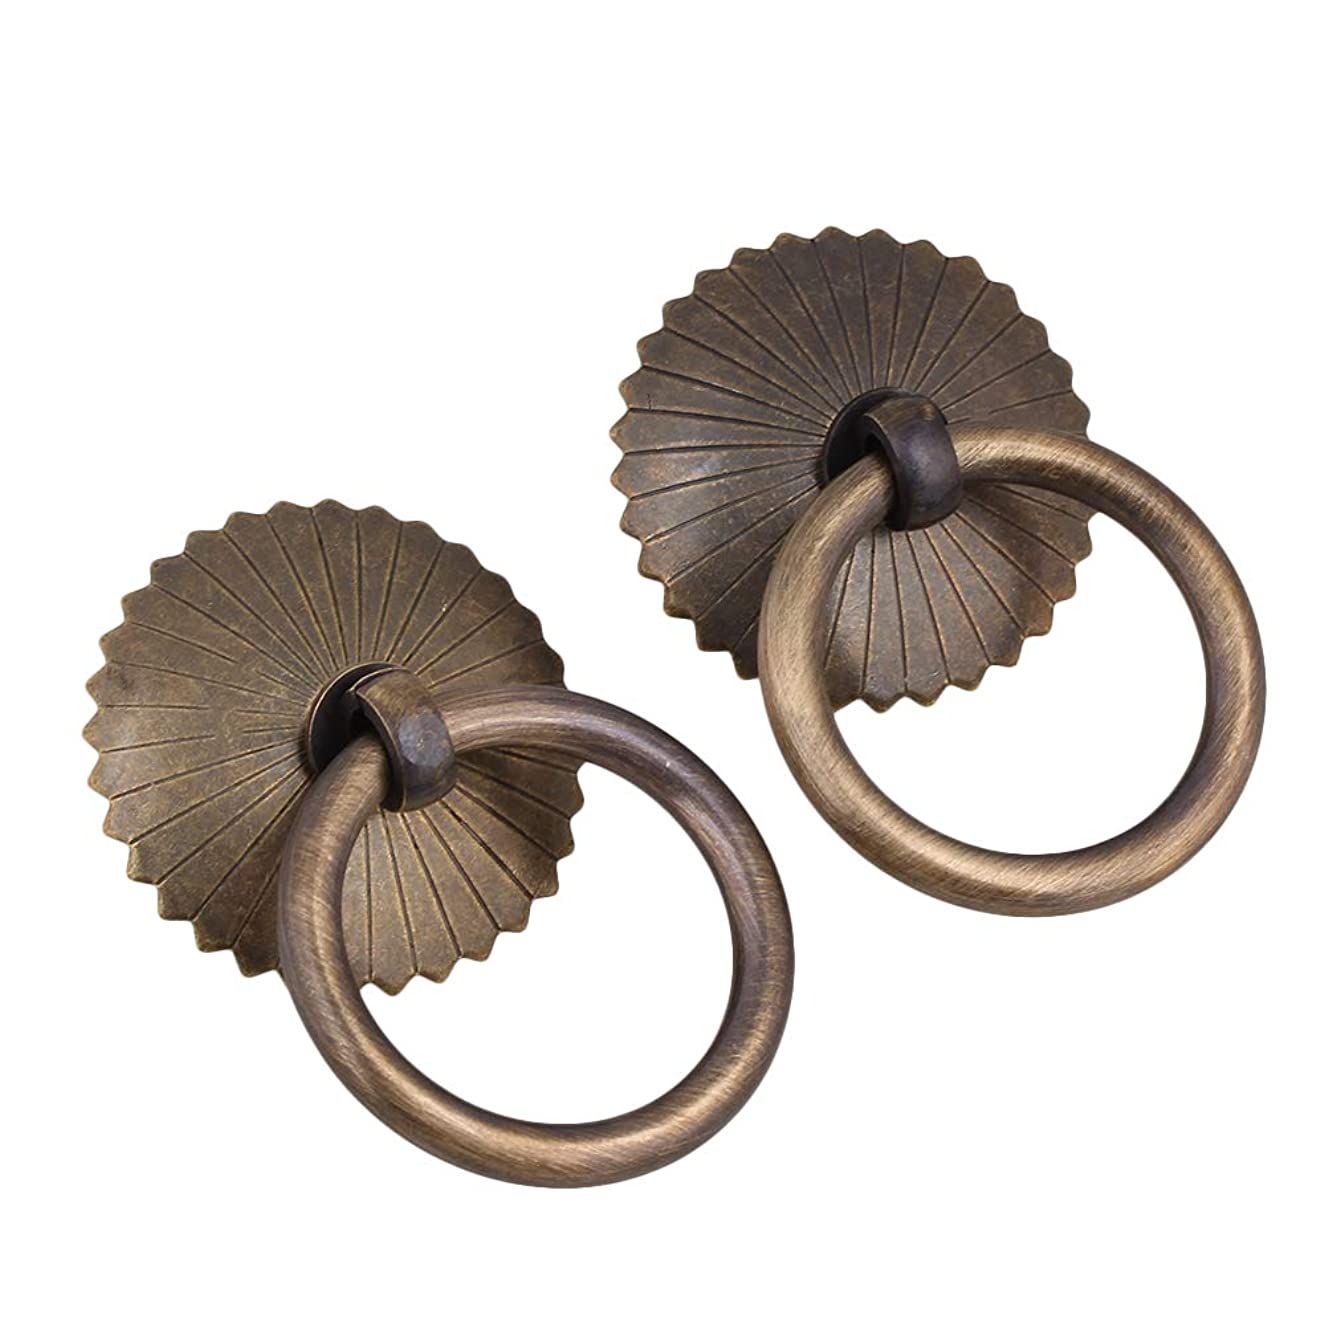 2PCS Antique Brass Jewelry Box Cabinet Drawer Drop Ring Pull Handle (Gasket Diameter:40mm/1.57inch)